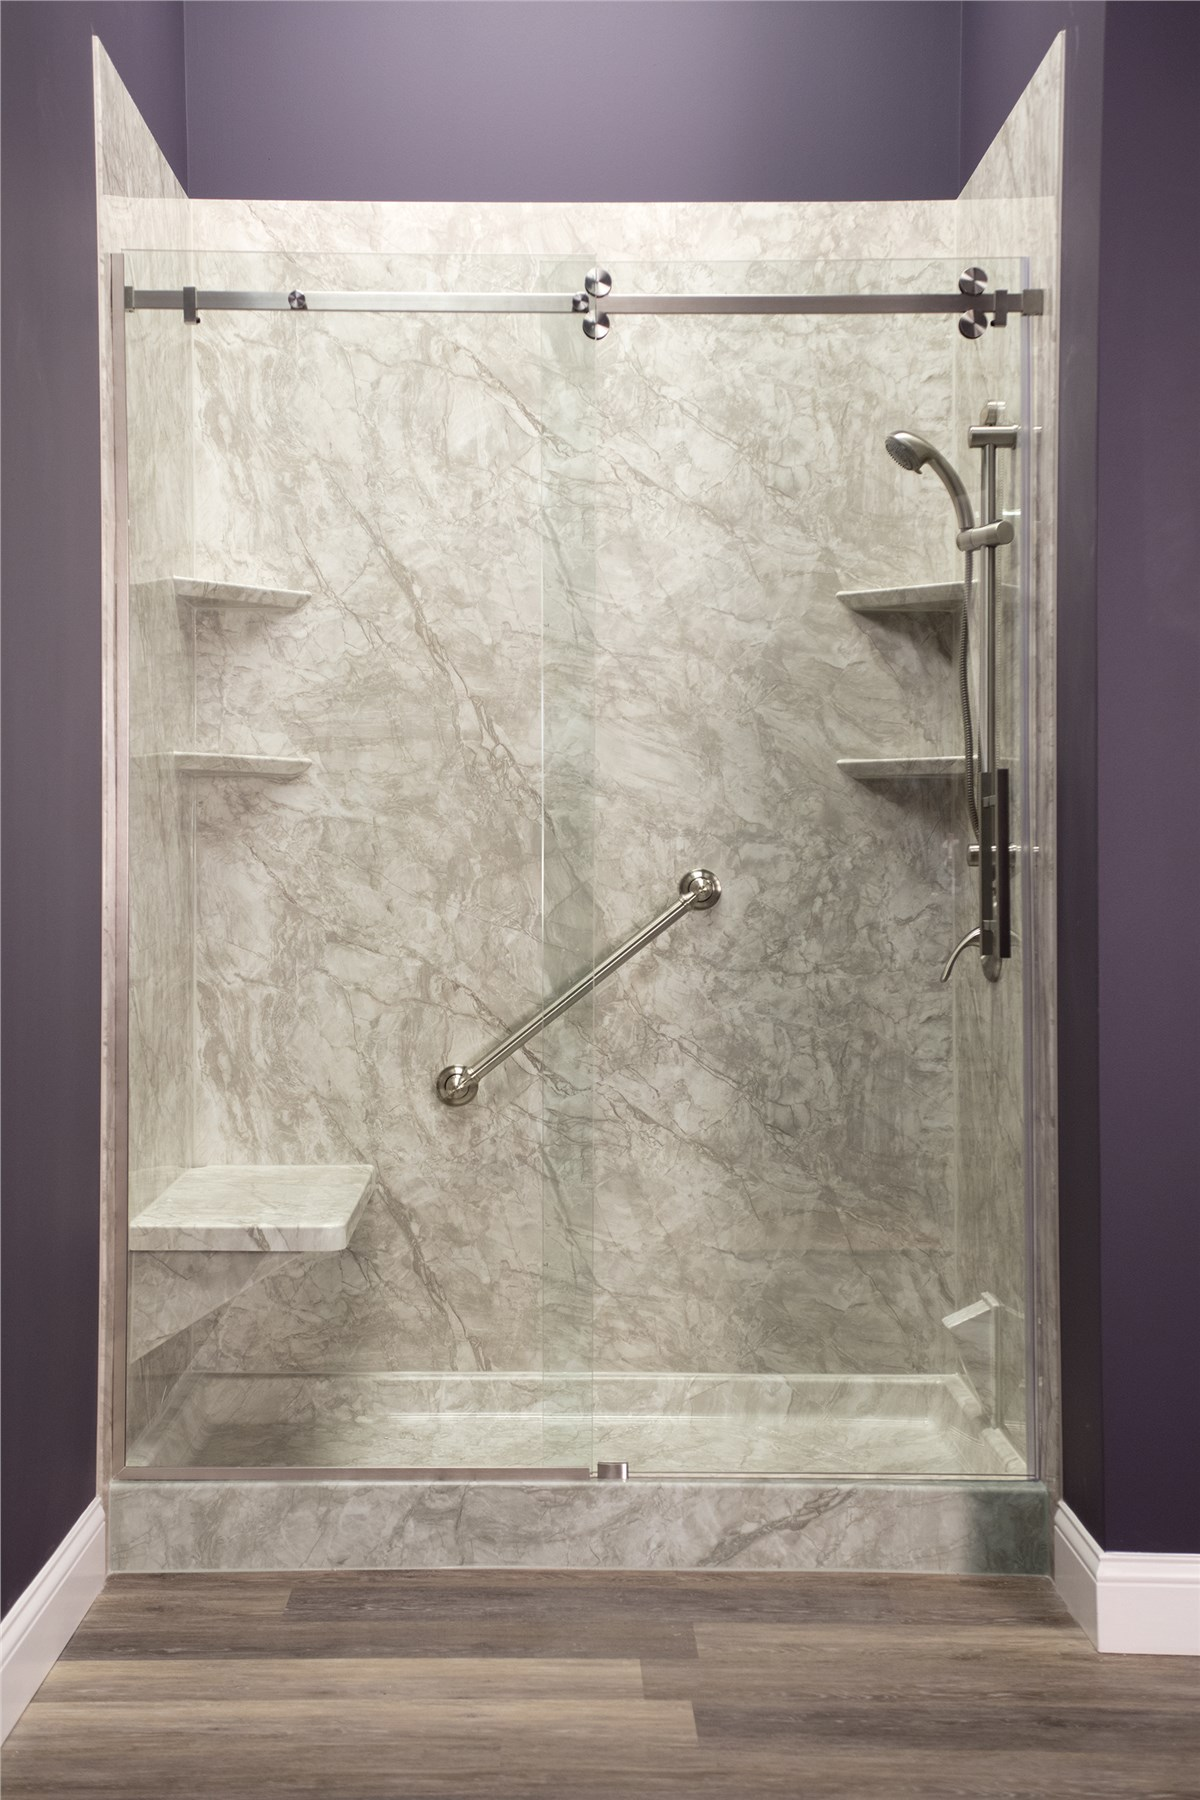 Shower Systems | Bathroom Remodeling Company | Improveit Home Remodeling